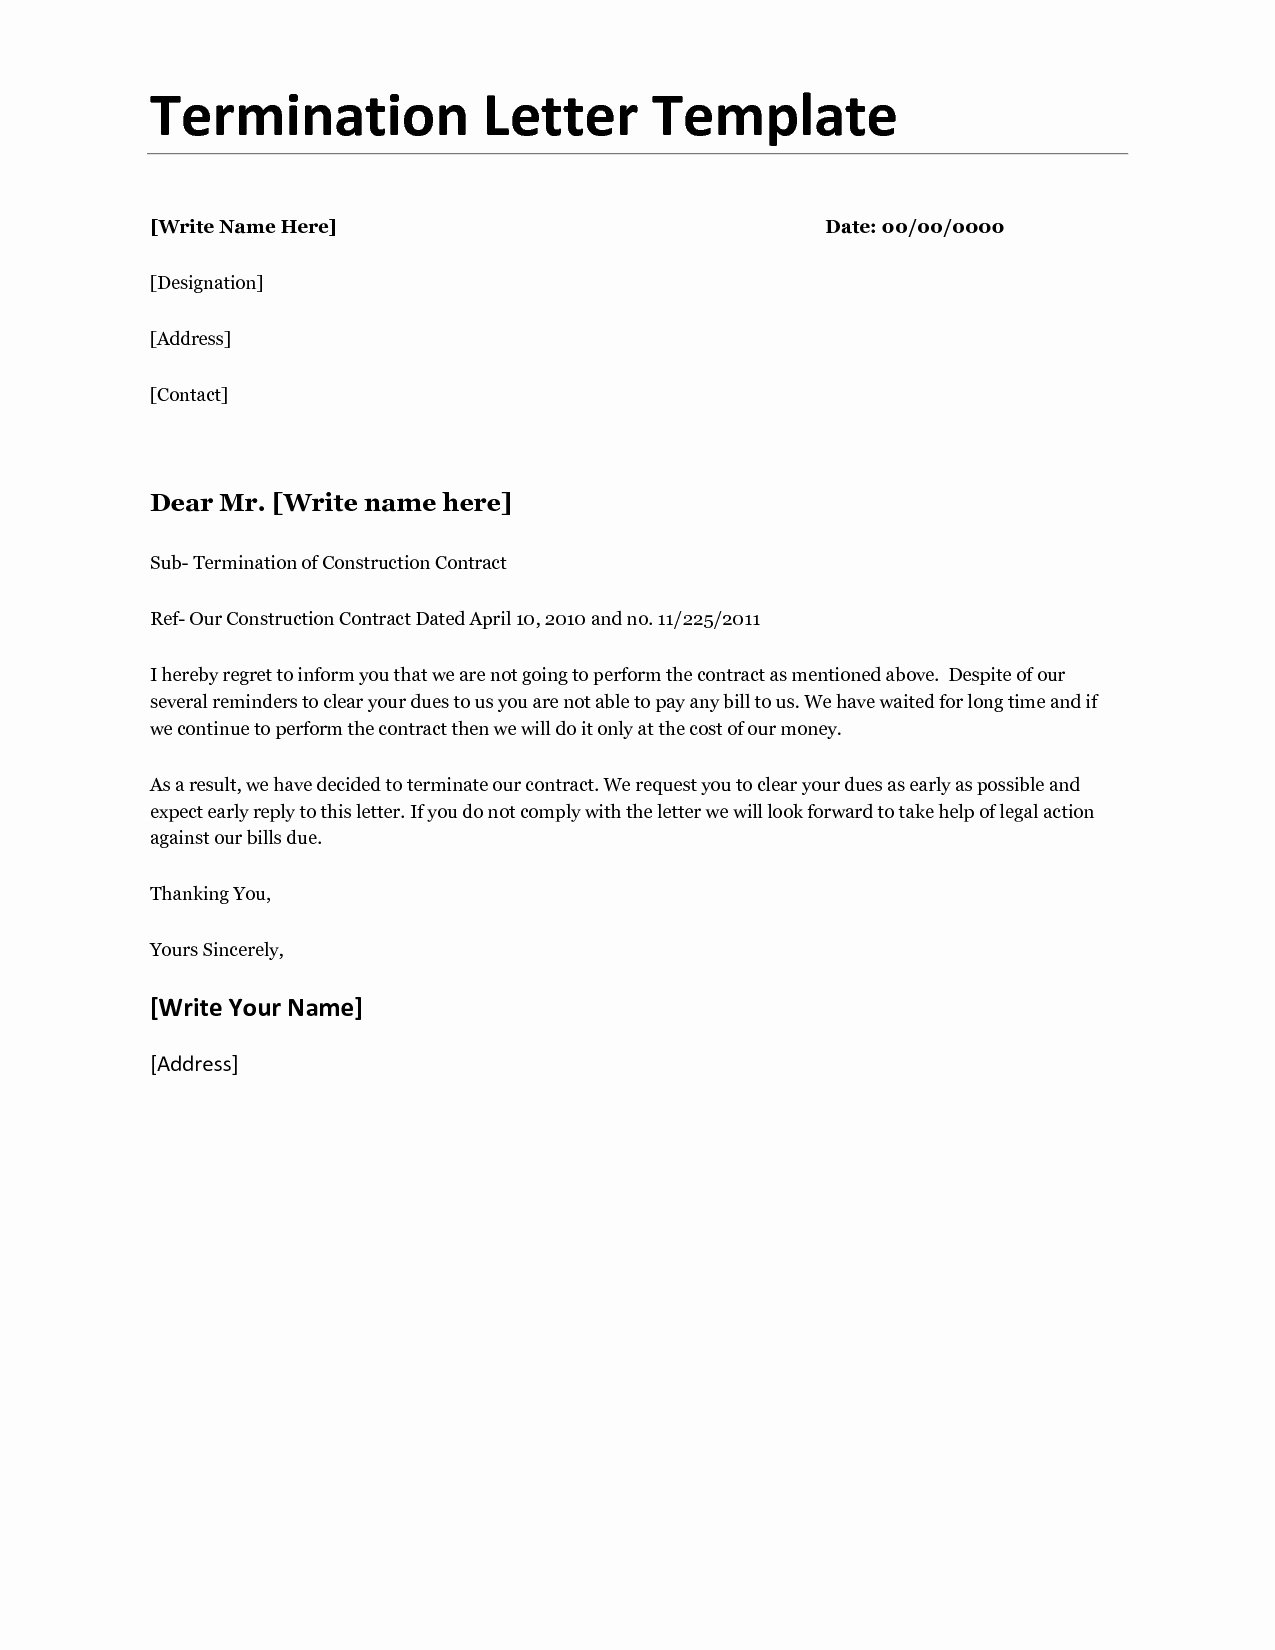 Contract Termination Letter Template Fresh Business Termination Letter Template Samples for Your